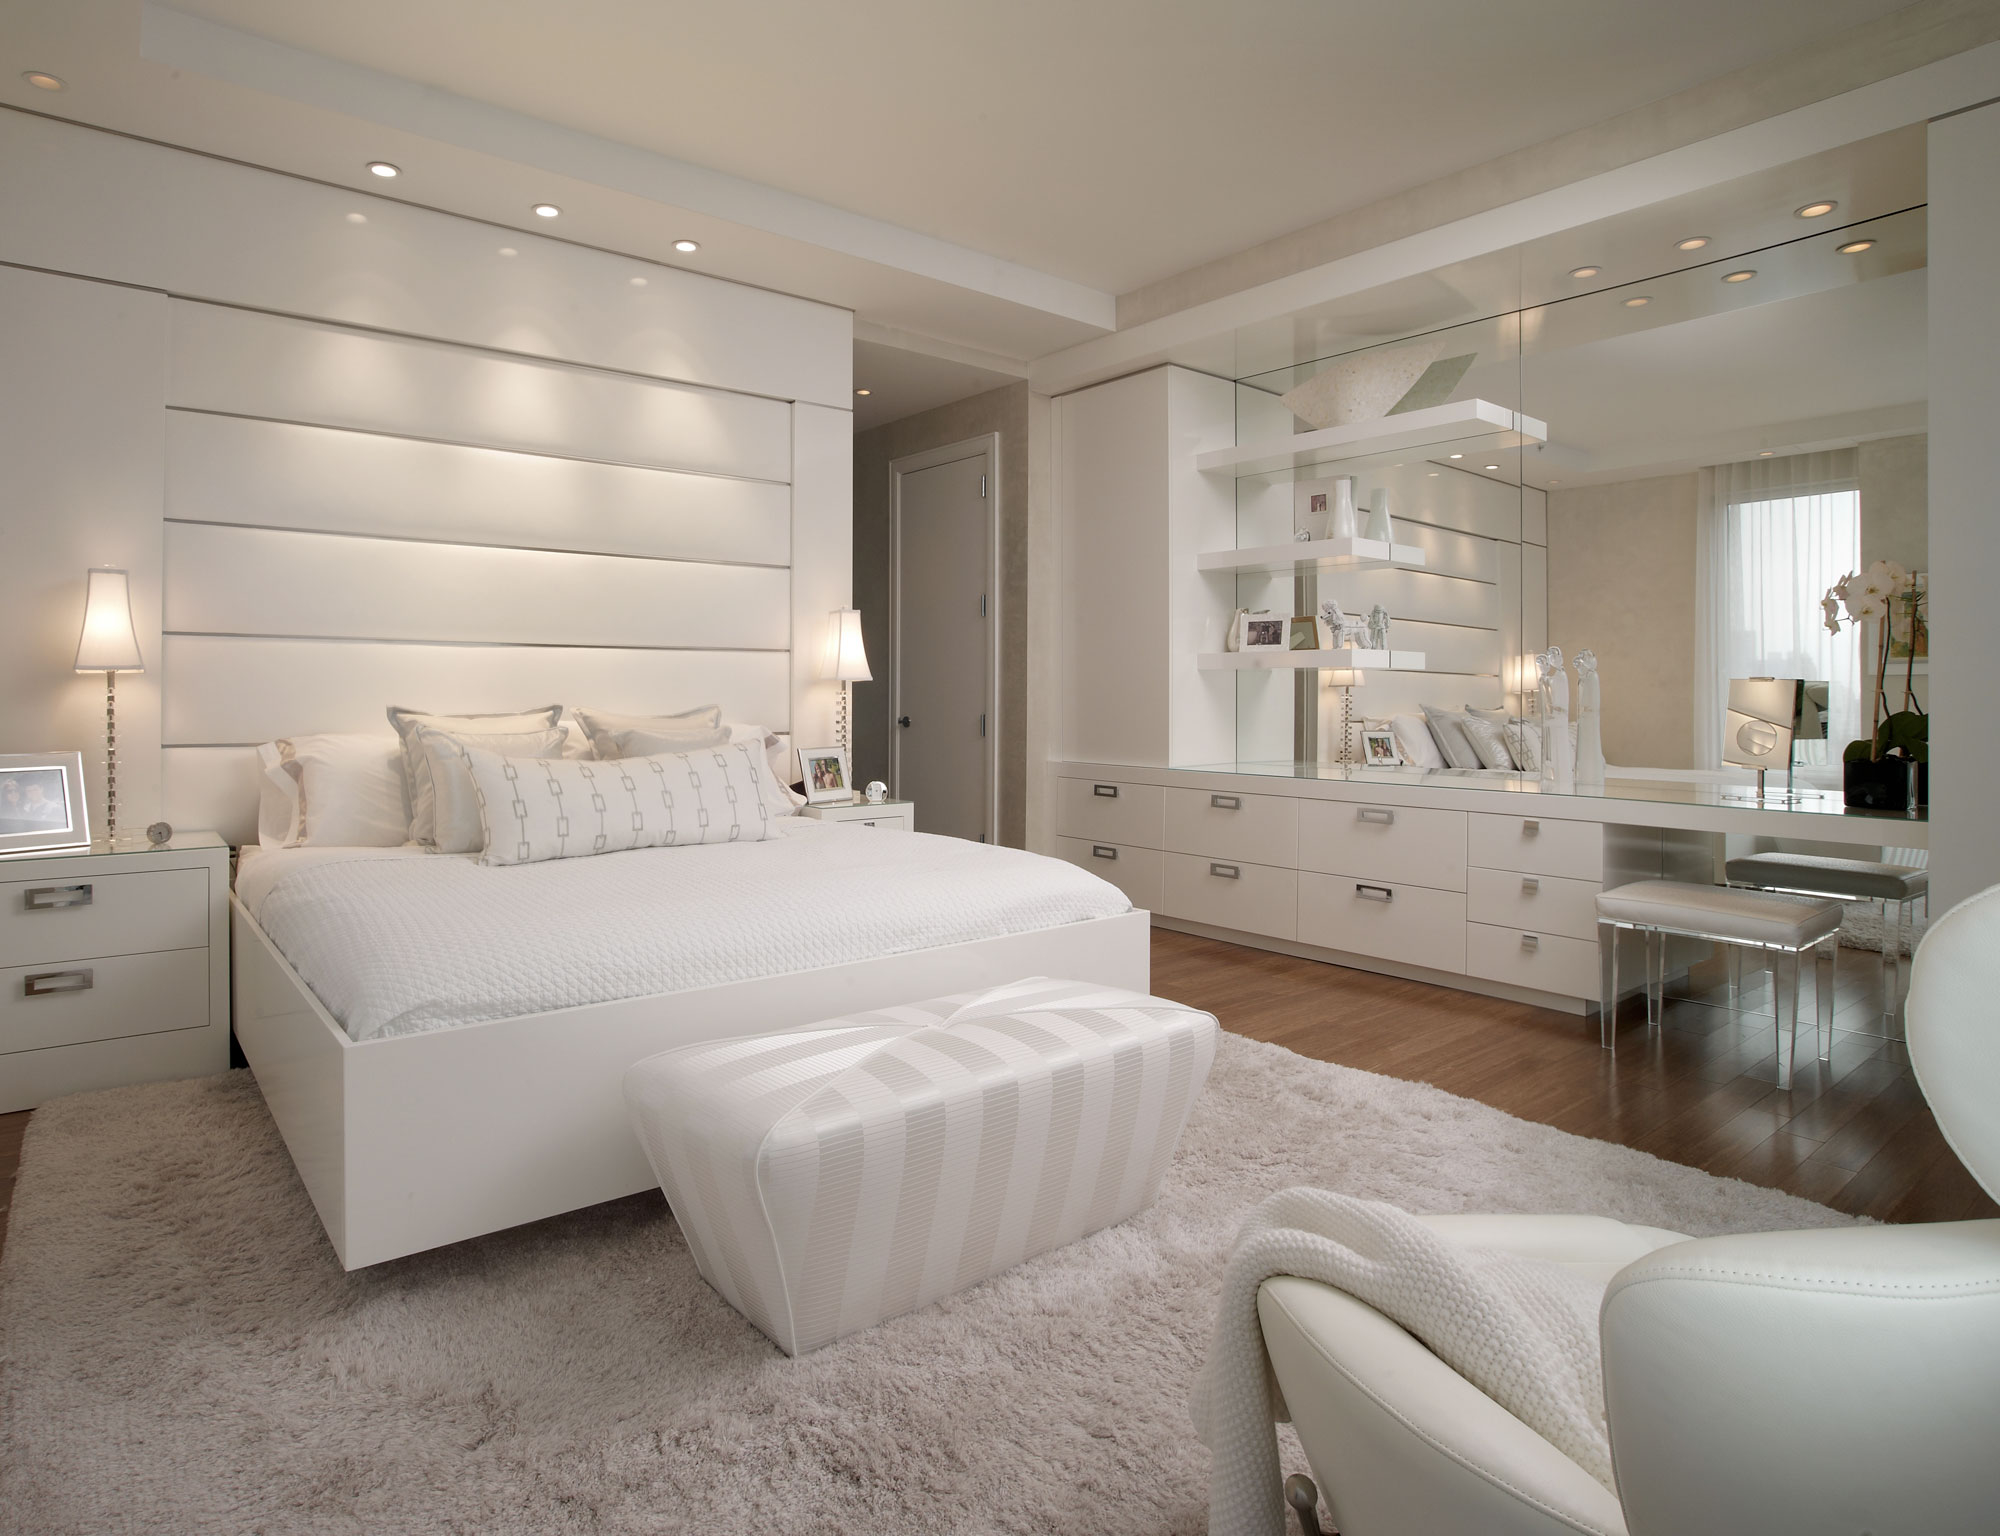 Glamour Bedroom Design Ideas 33